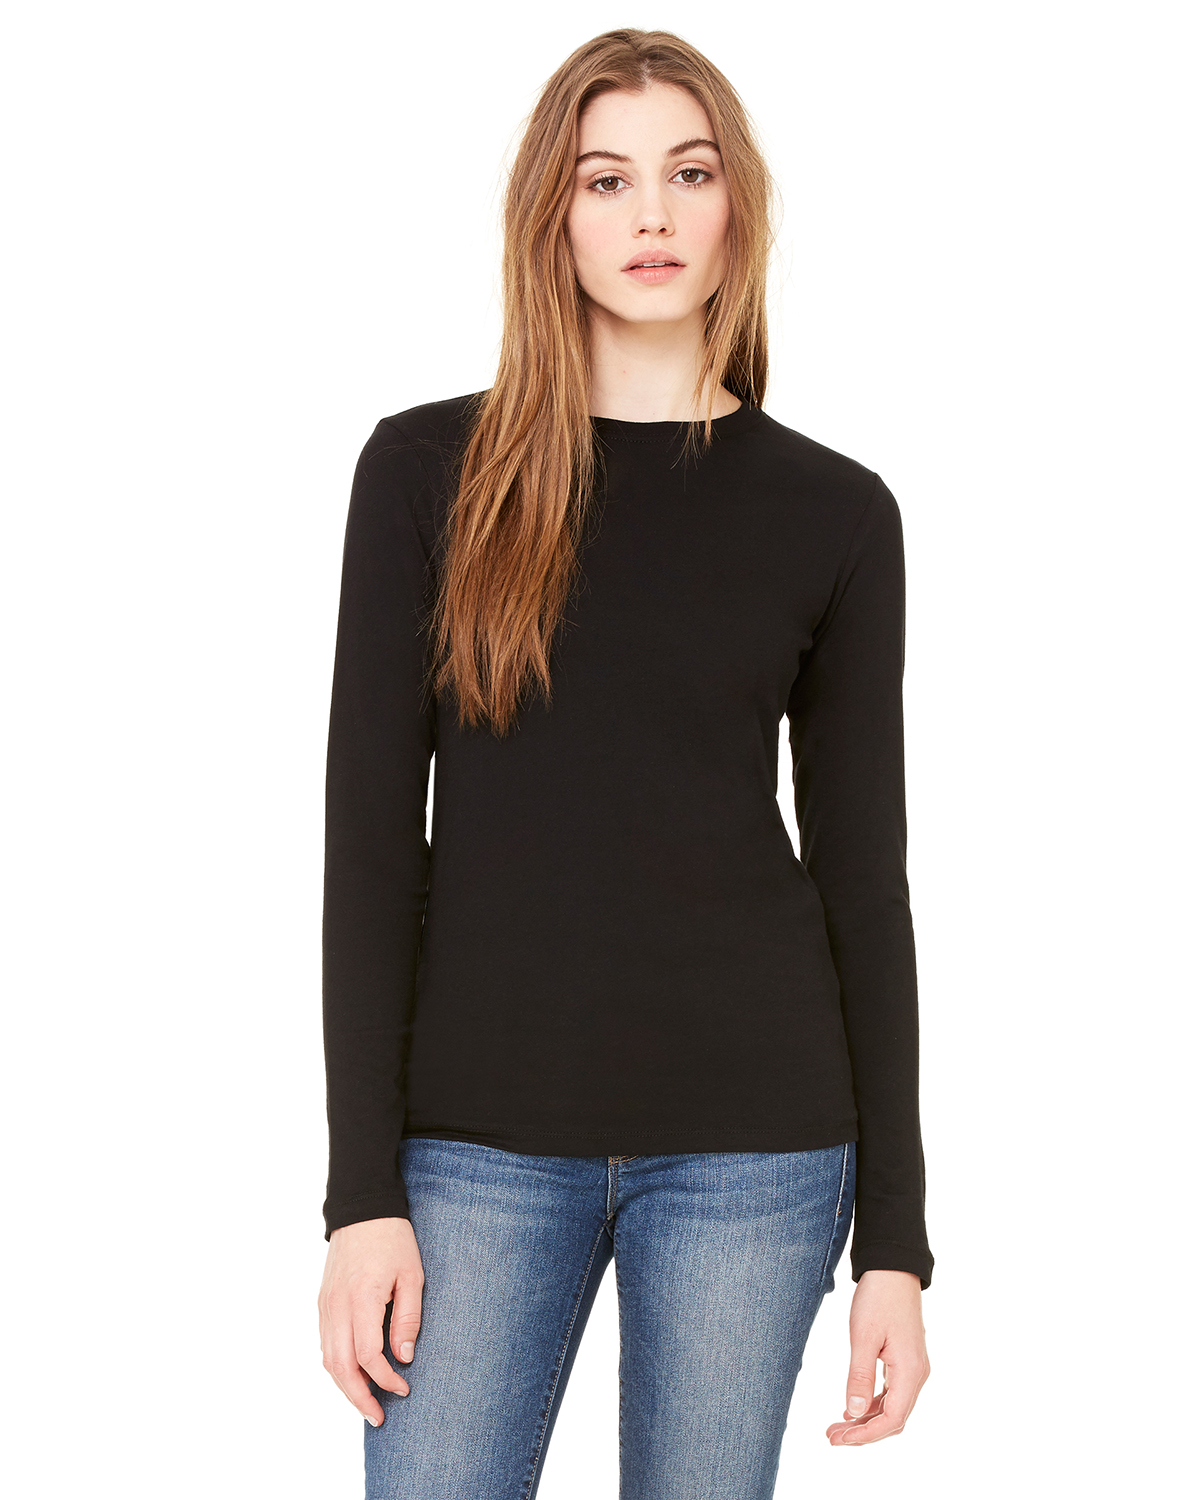 Bella B6500  Women's Long Sleeve Crew-neck Jersey T-Shirt